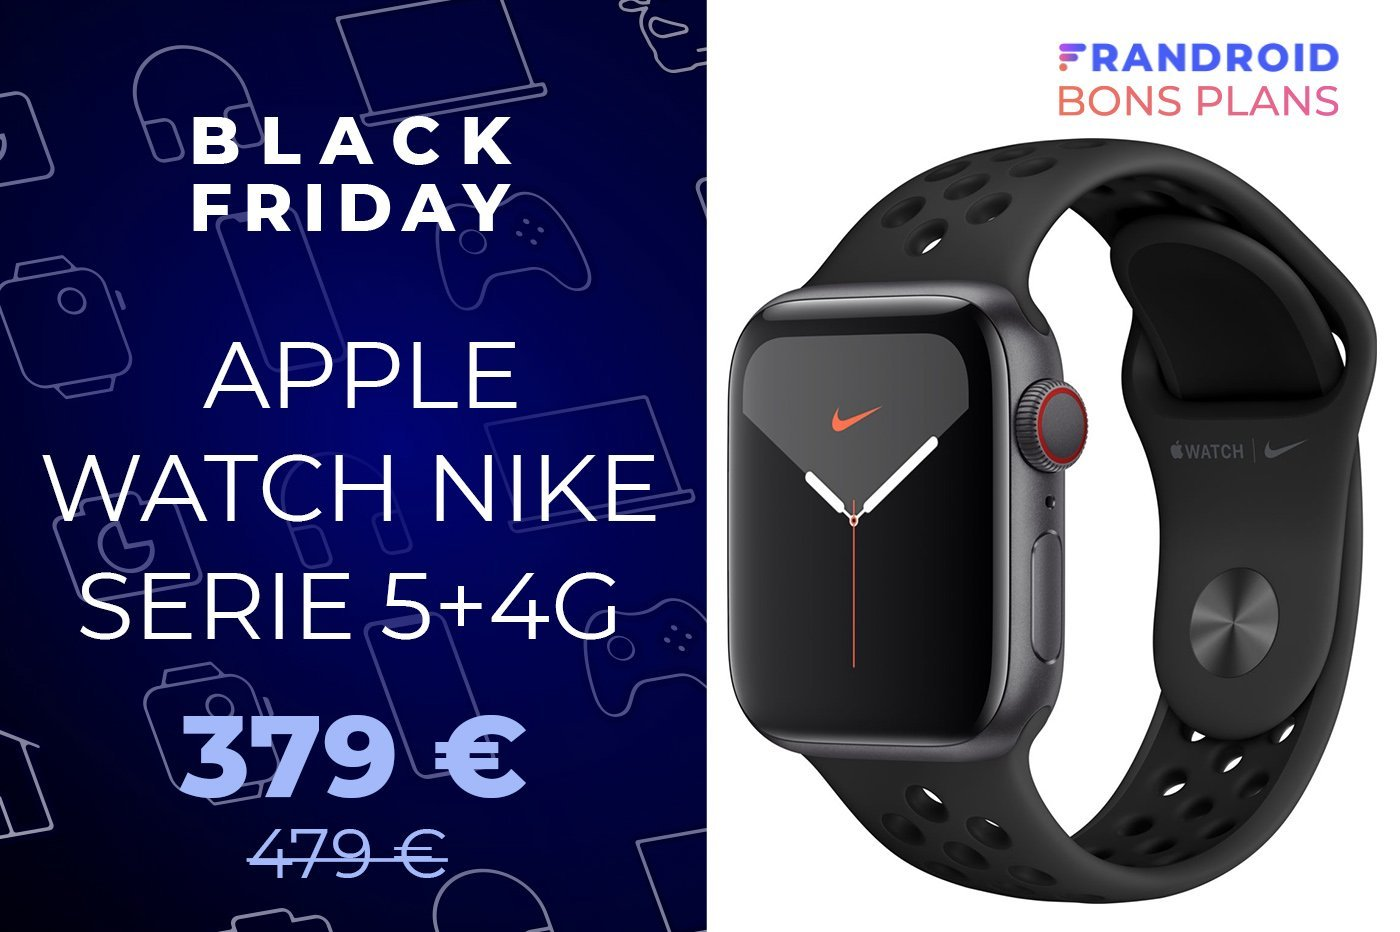 L'Apple Watch Serie 5 compatible 4G est à -100 euros pour le Black Friday